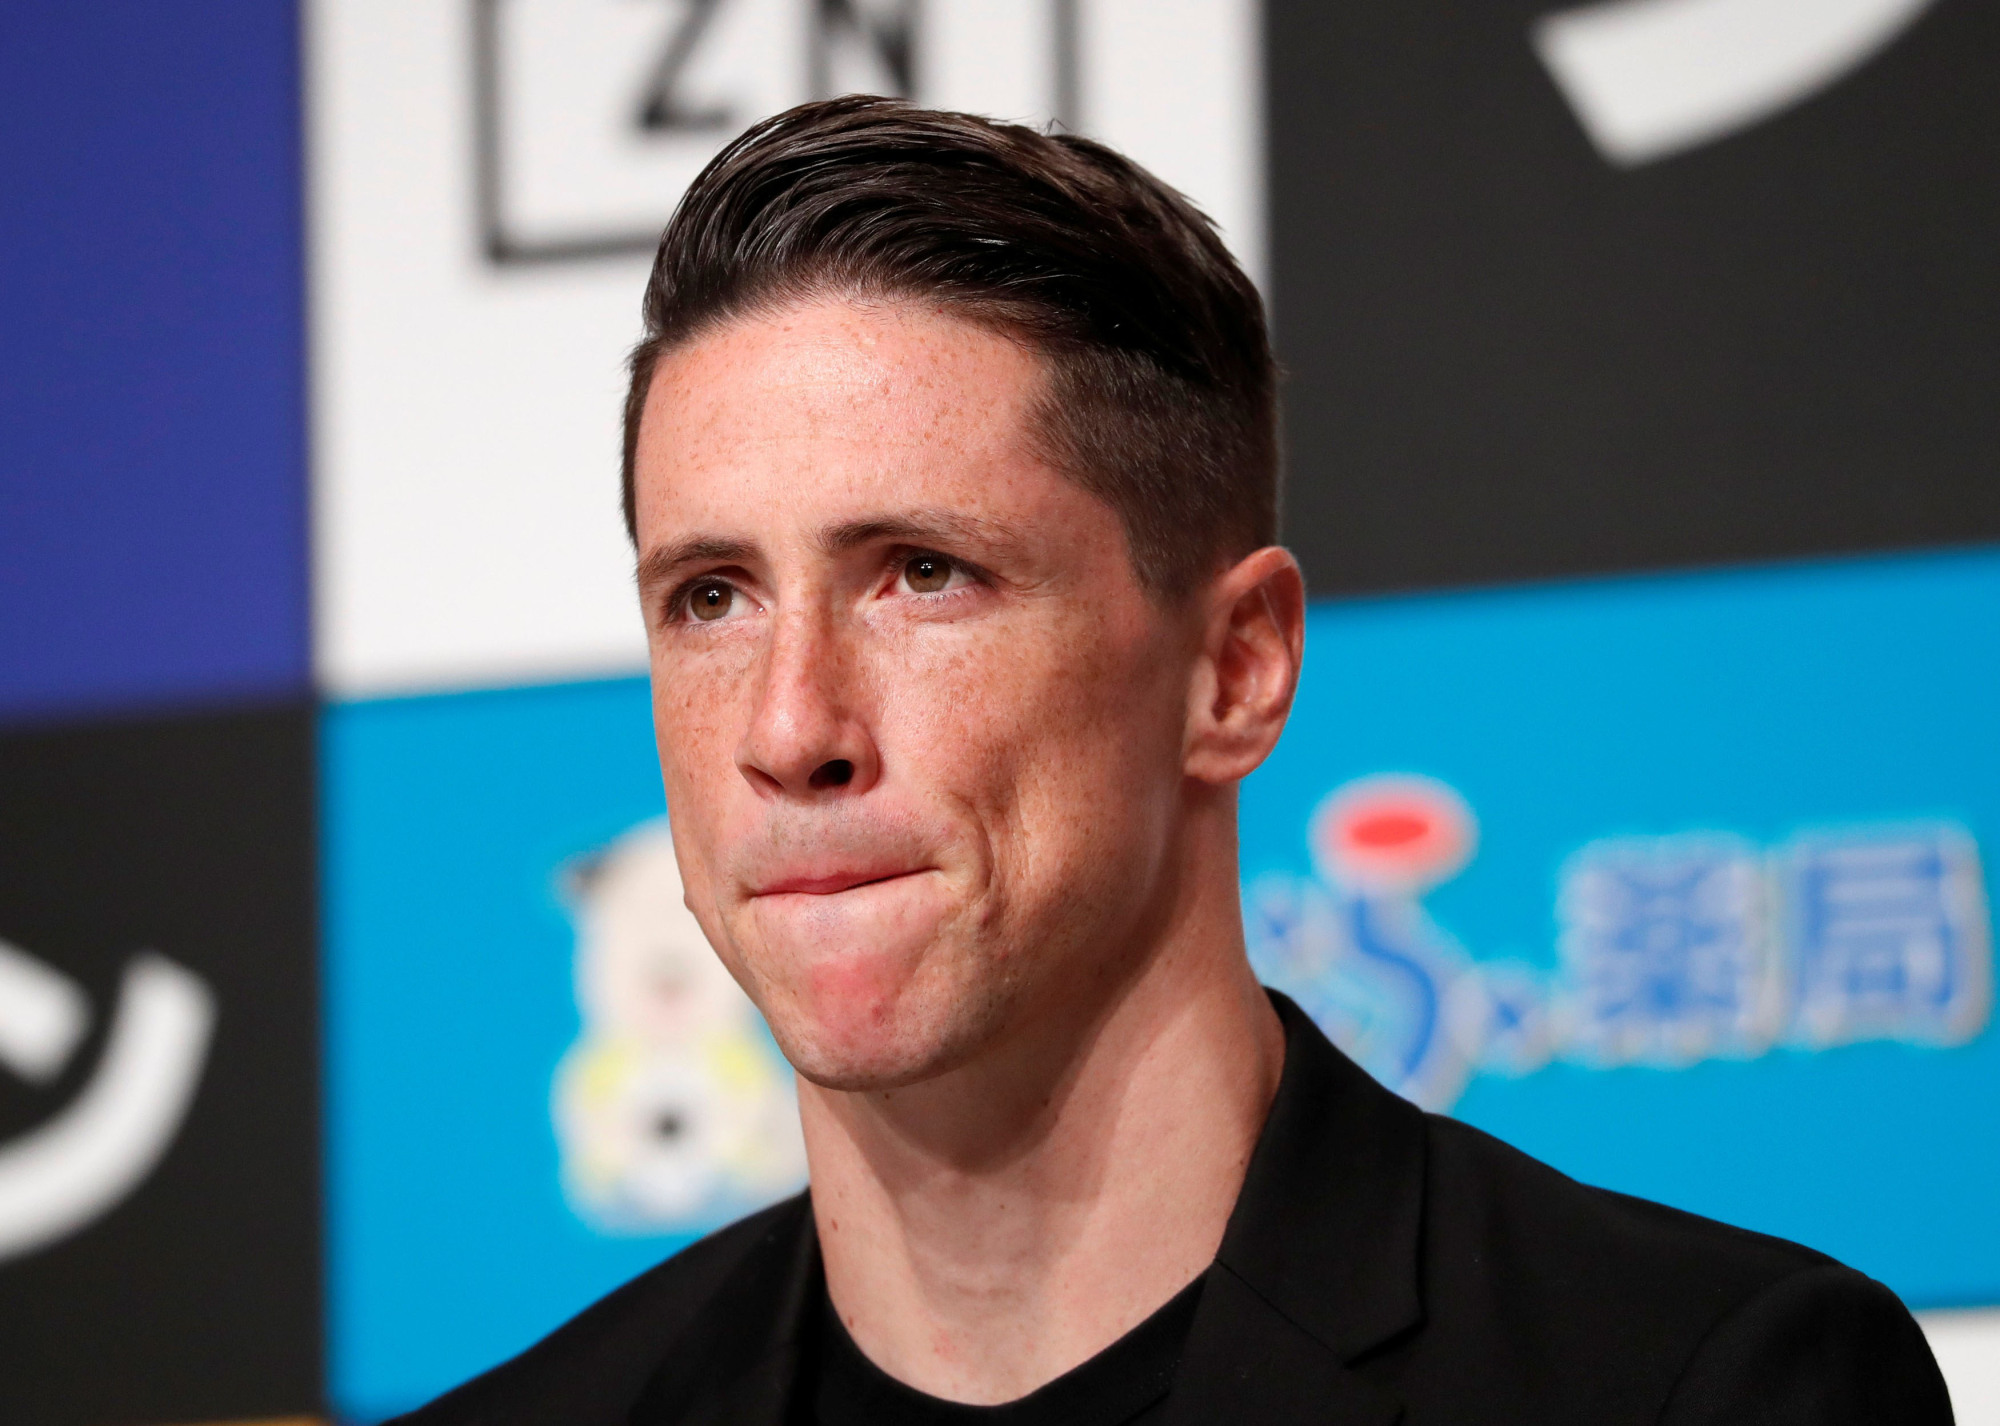 Sagan star striker Fernando Torres faces the media during a news conference to announce his retirement from soccer on Sunday in Tokyo. | REUTERS